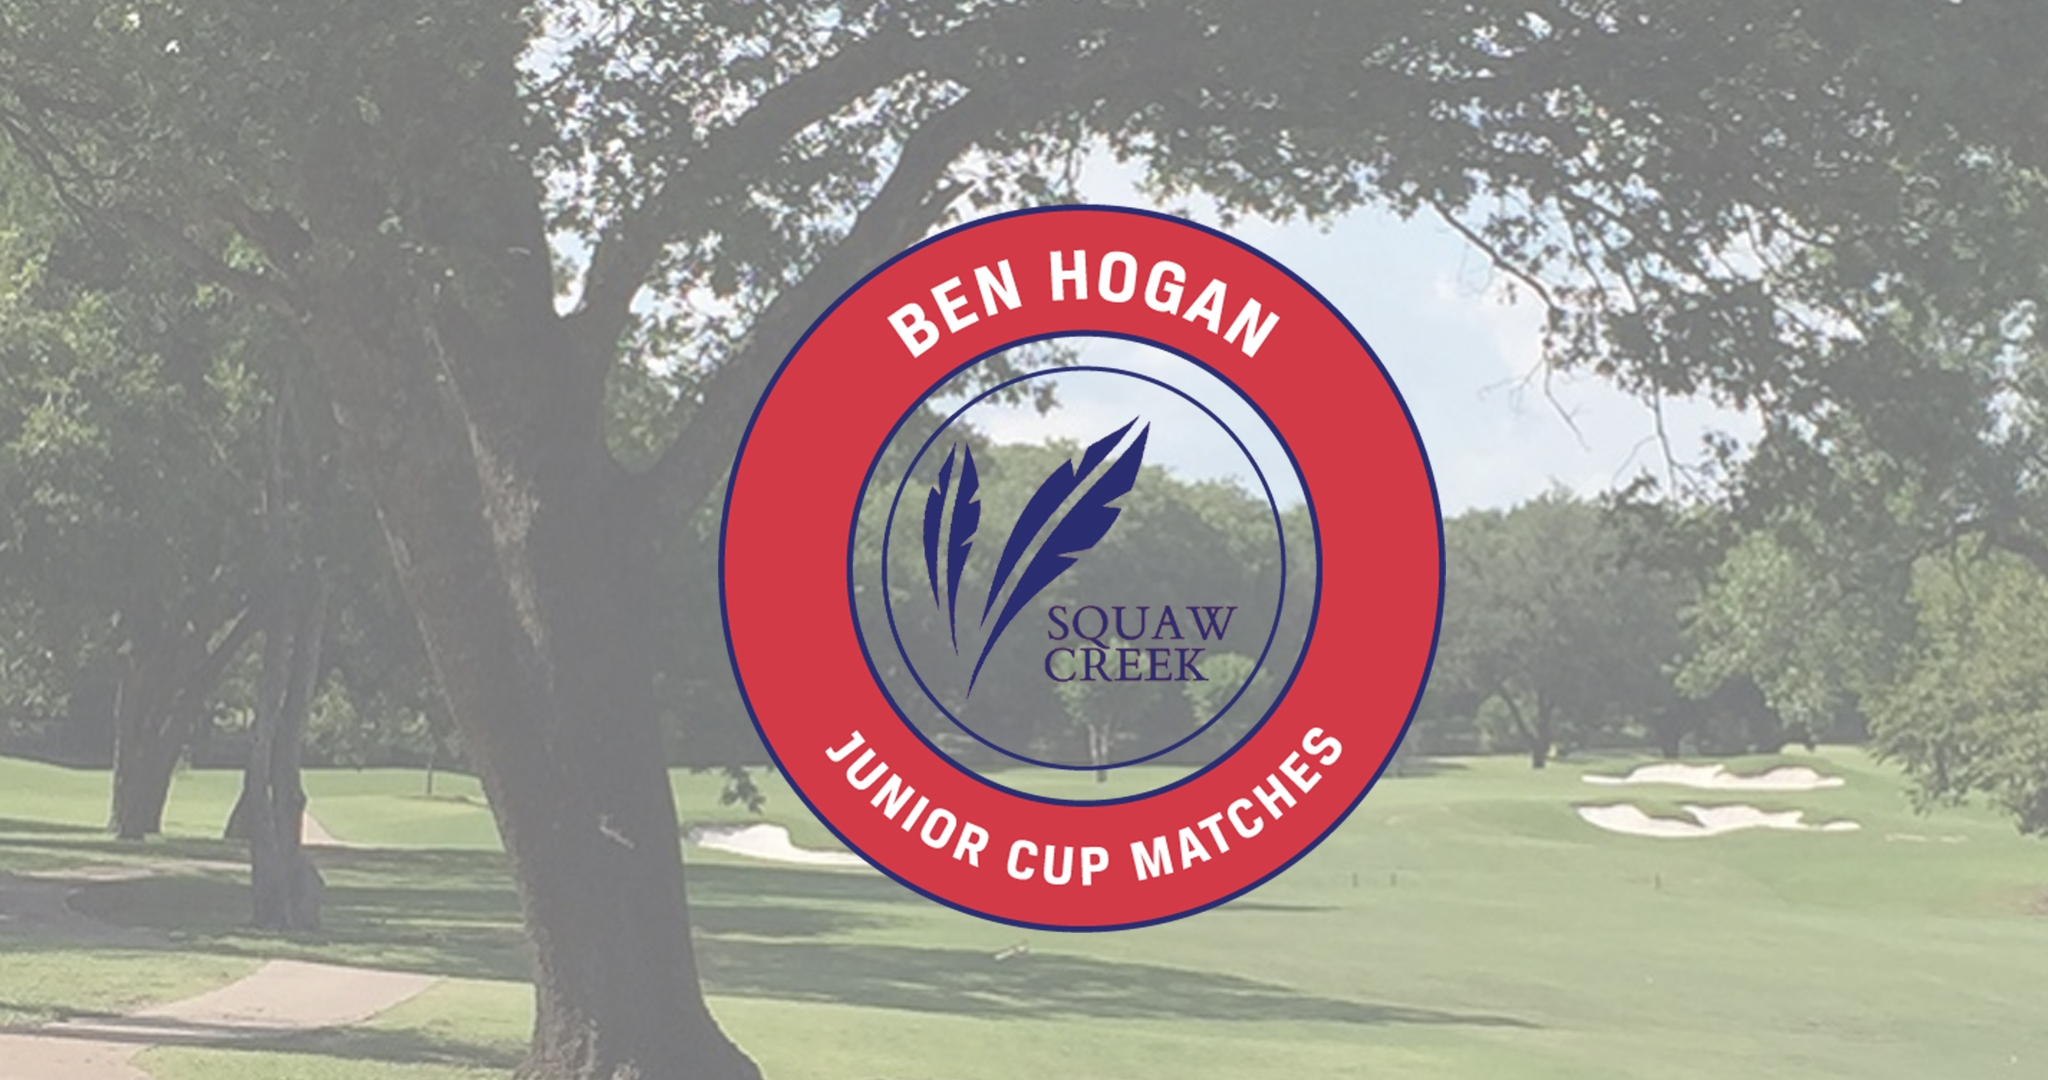 Northern Texas PGA & Southern Texas PGA Announce 4th Annual Ben Hogan Junior Cup Matches Captains & Site Change